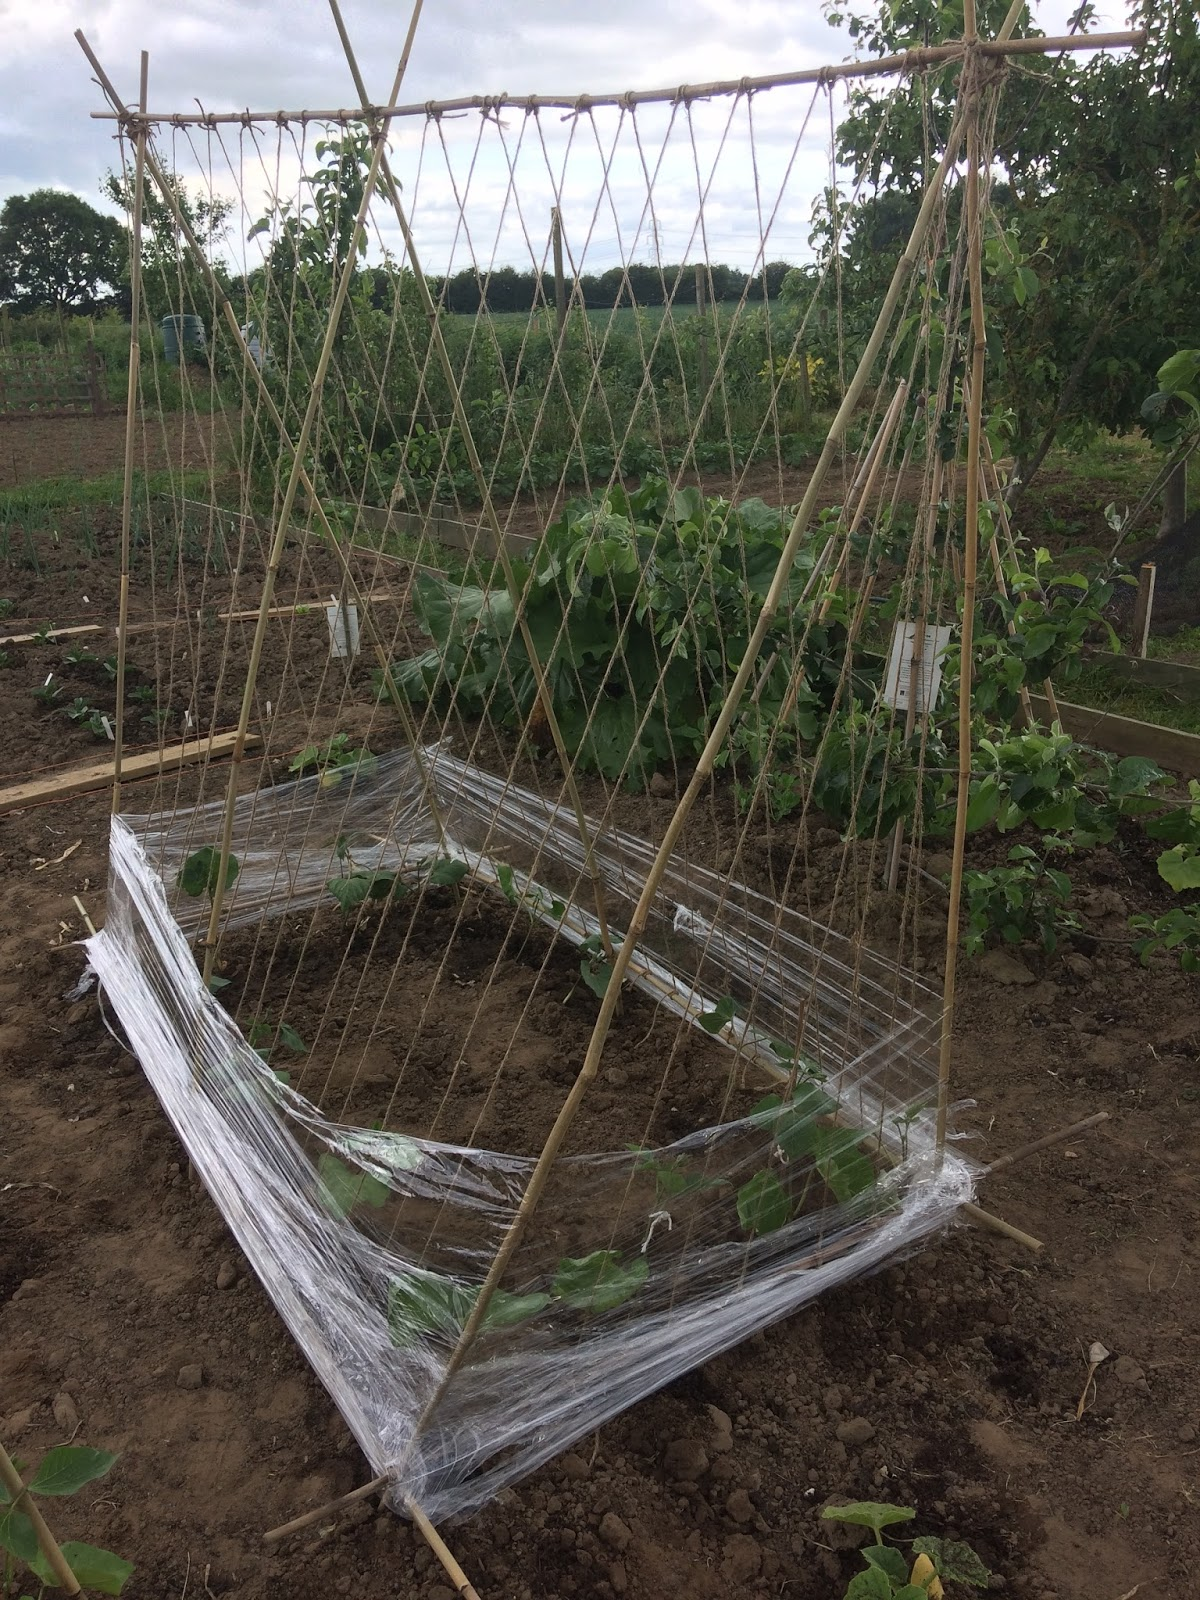 40 Plus and All is Well: Organic garden update - building bean ...